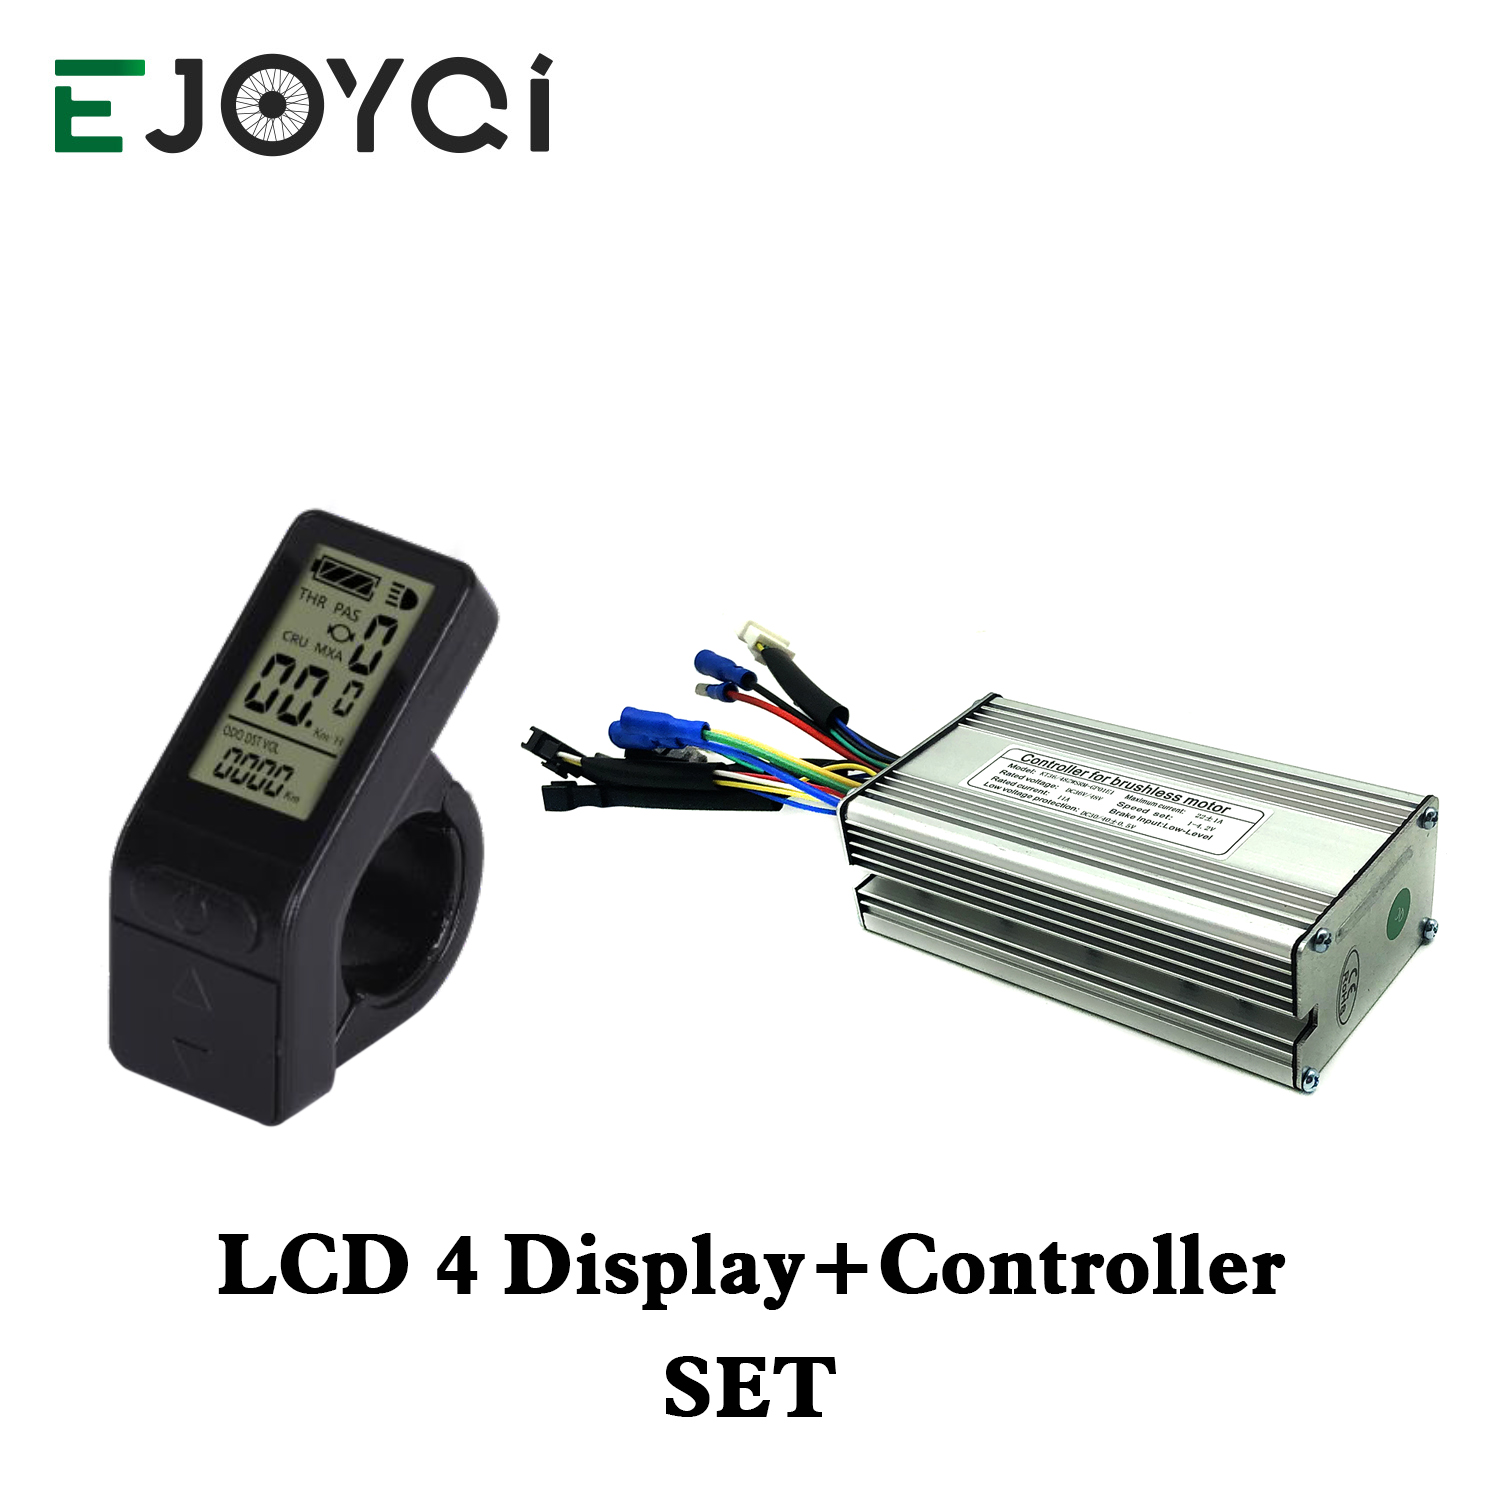 EJOYQI KT 36V 48V 14A 22A Controller 250W 500W Motor Electric Bike Conversion Accessories With LCD 4 Display